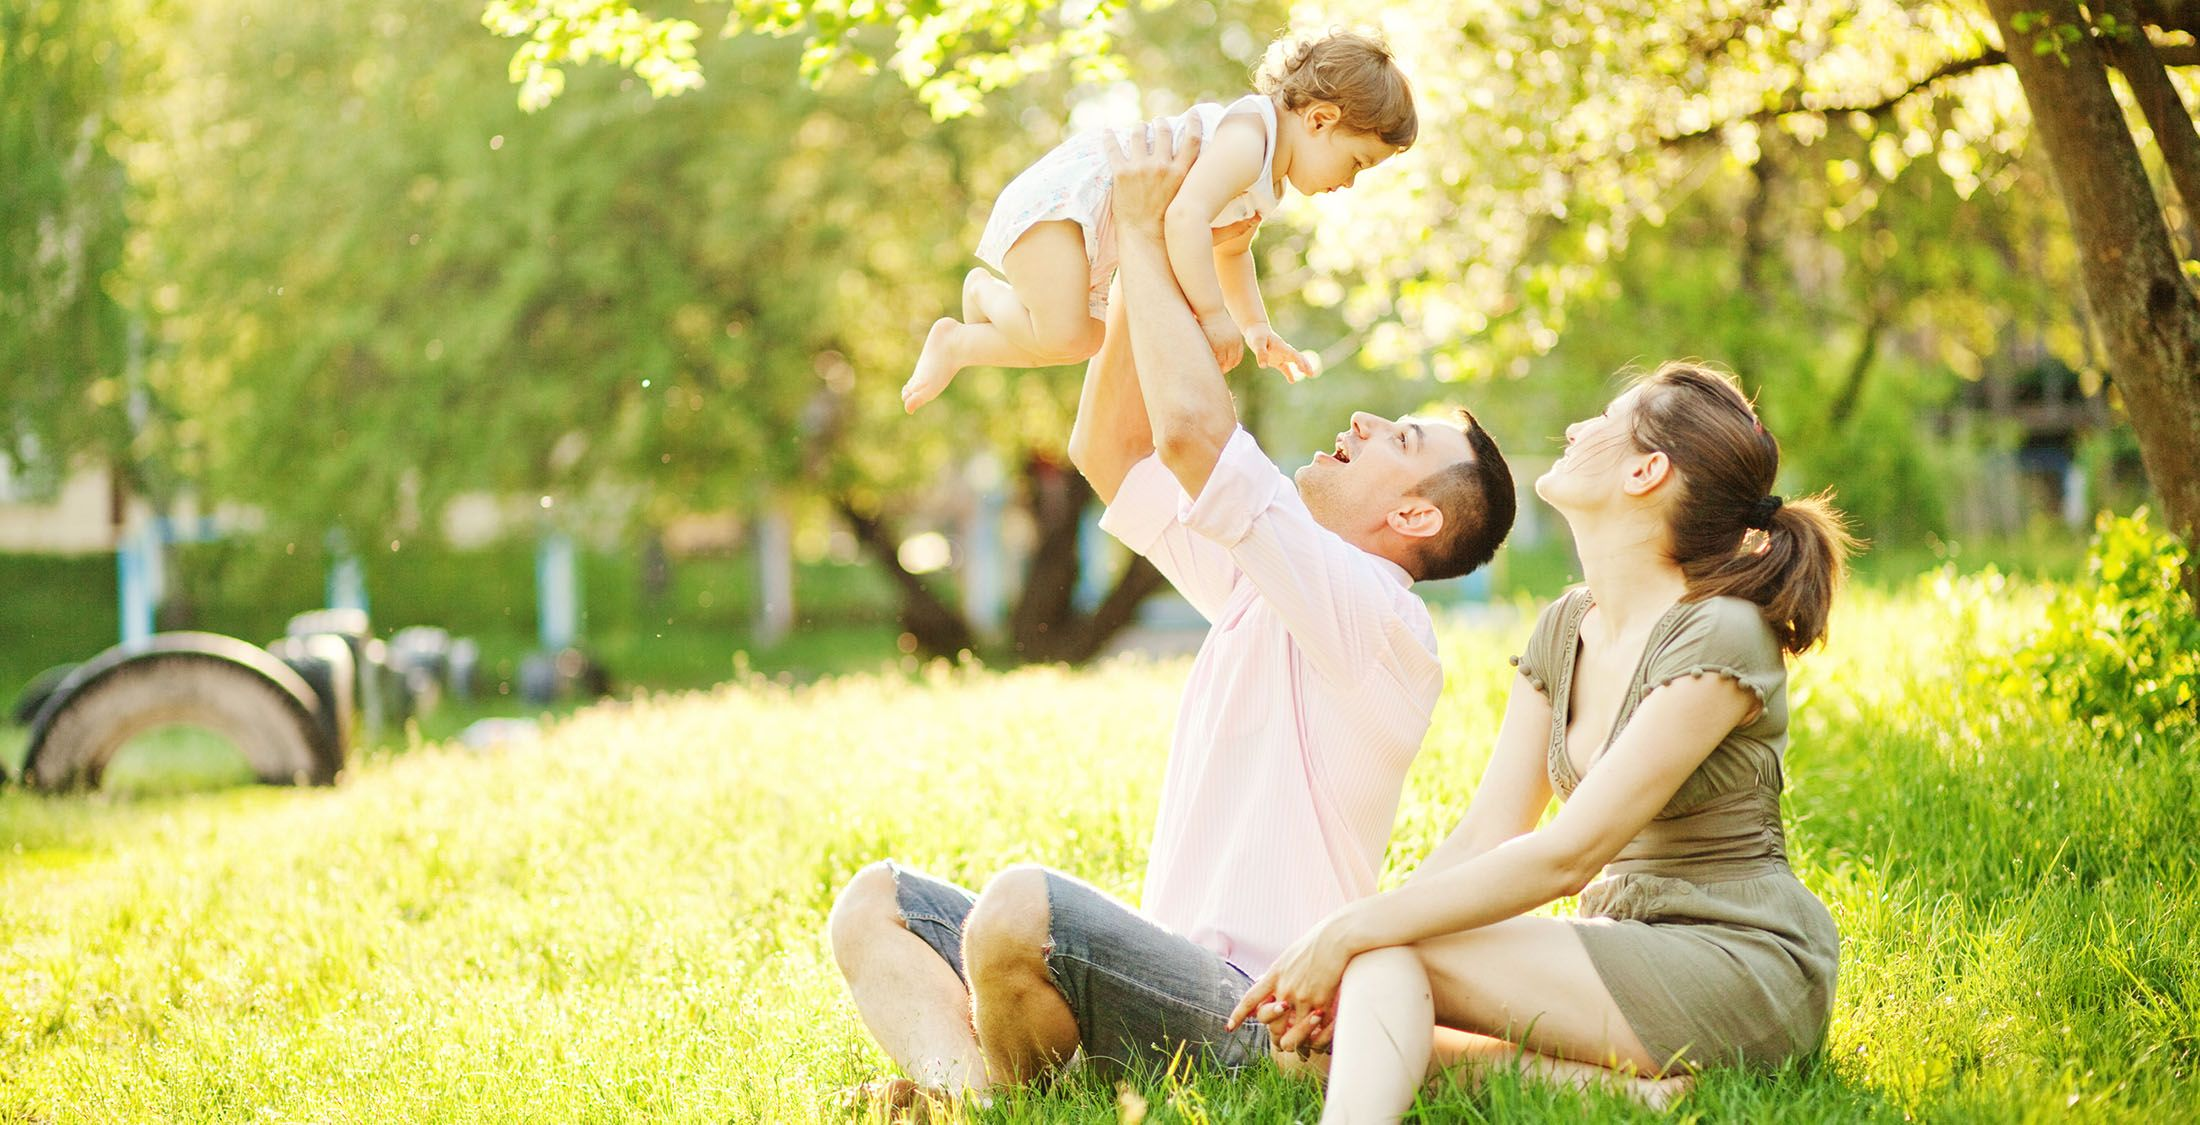 couple playing with baby